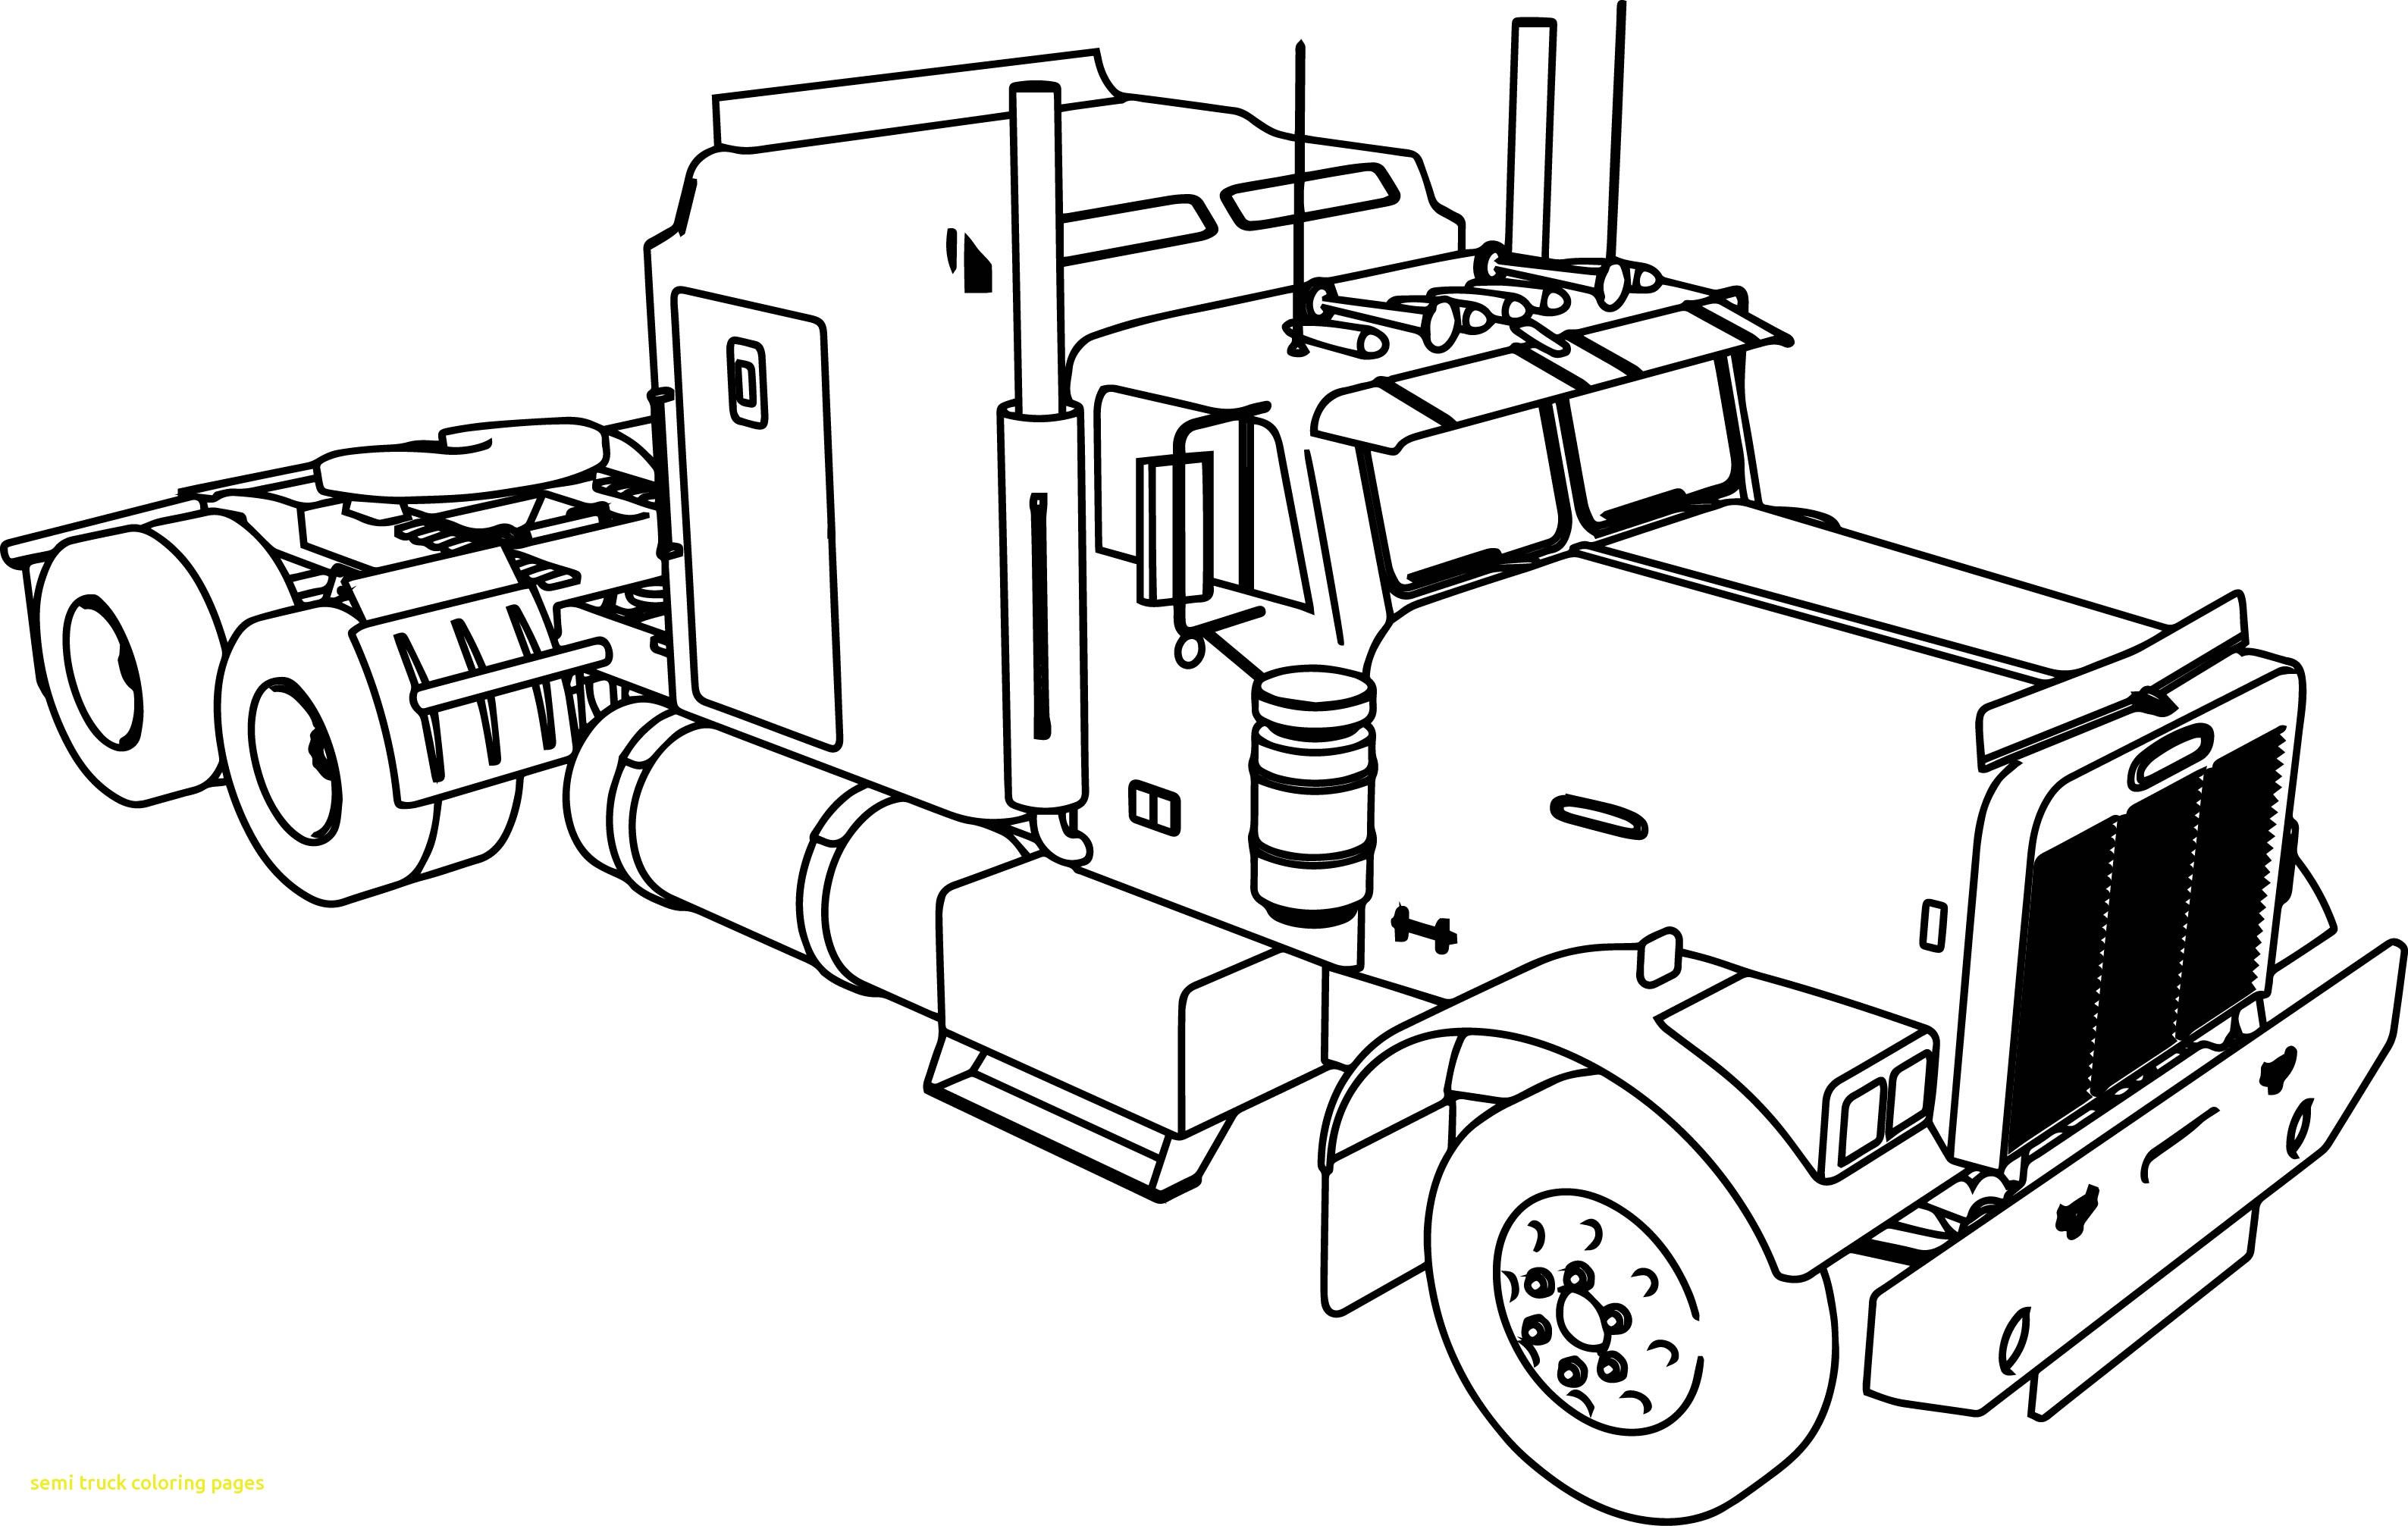 lowrider truck coloring pages lowrider truck coloring pages coloring pages truck lowrider